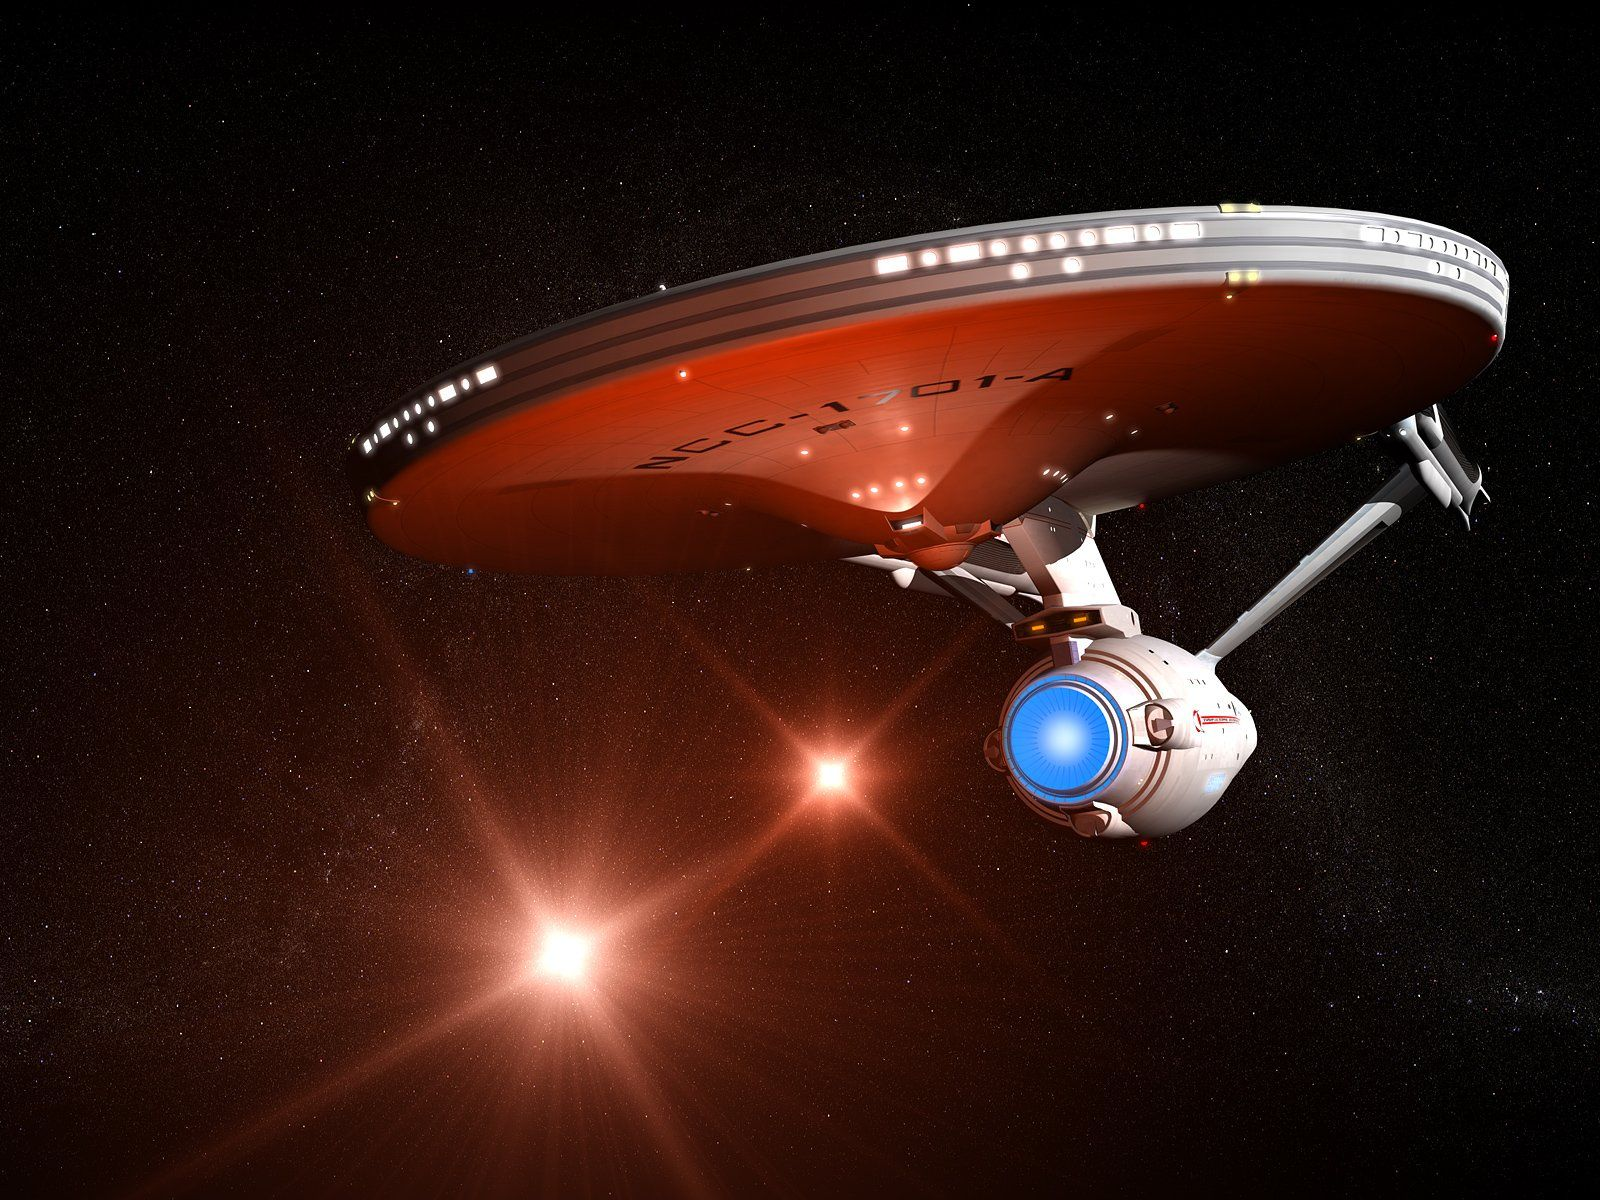 Starship Uss Enterprise 1701a Free Computer Desktop Wallpaper